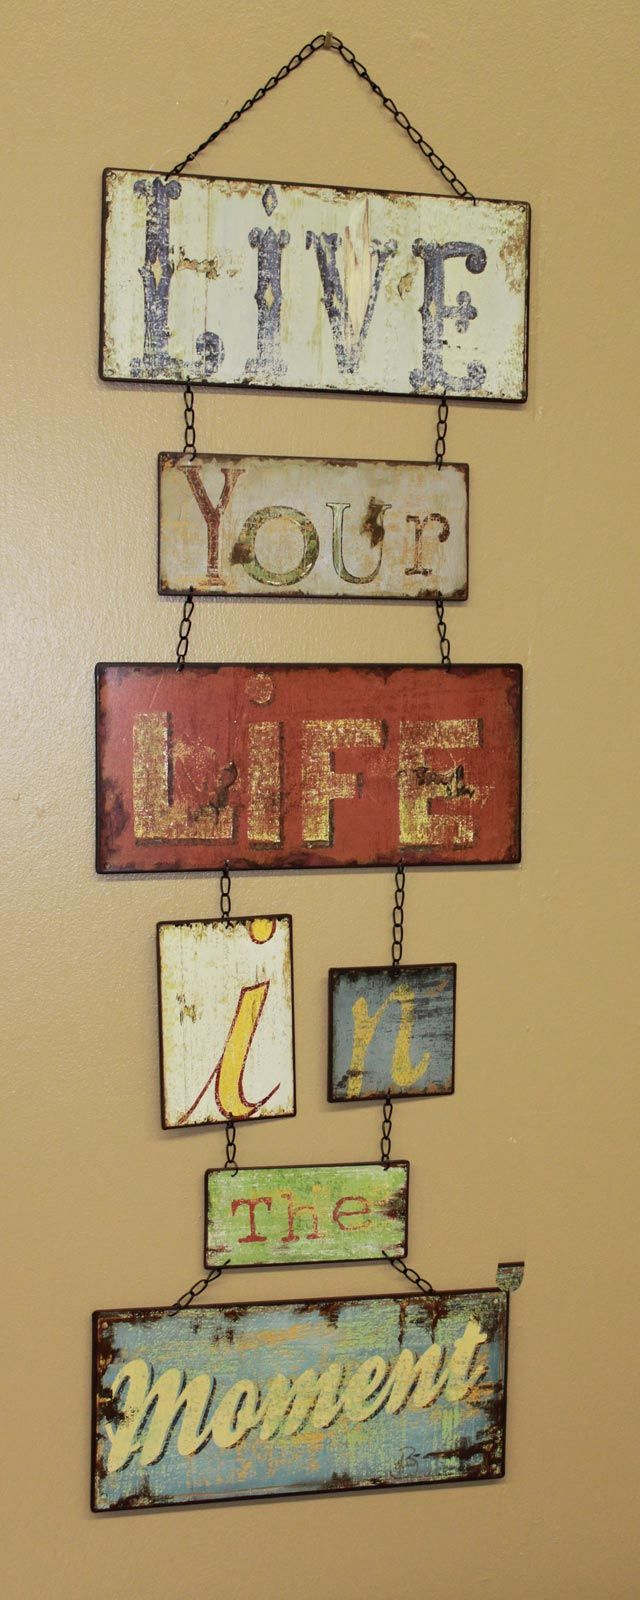 "Wall Art Hangers Hanging Wall Art ""live Your Life In The Moment"" Metal Sign"